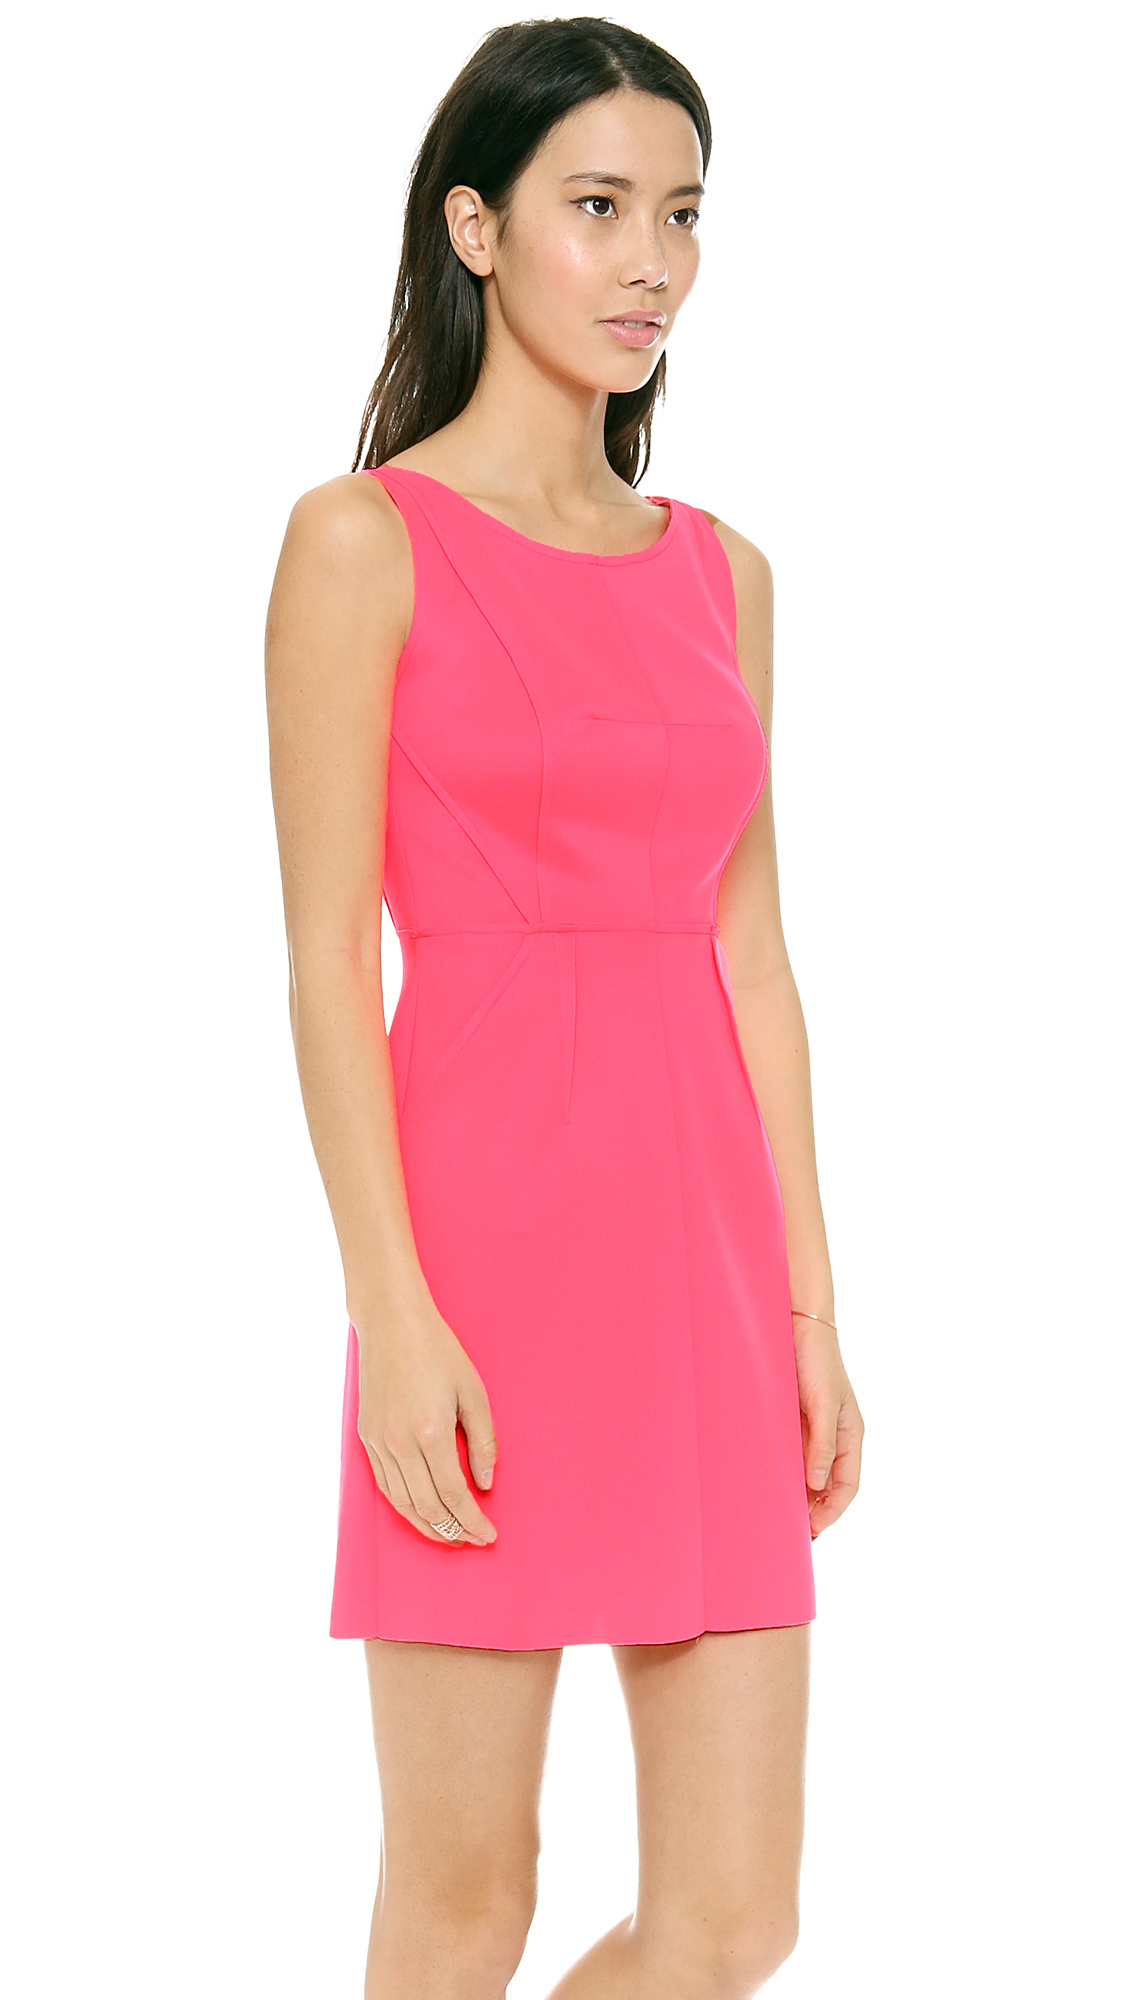 Milly Seamed Detail Dress in Pink  Lyst